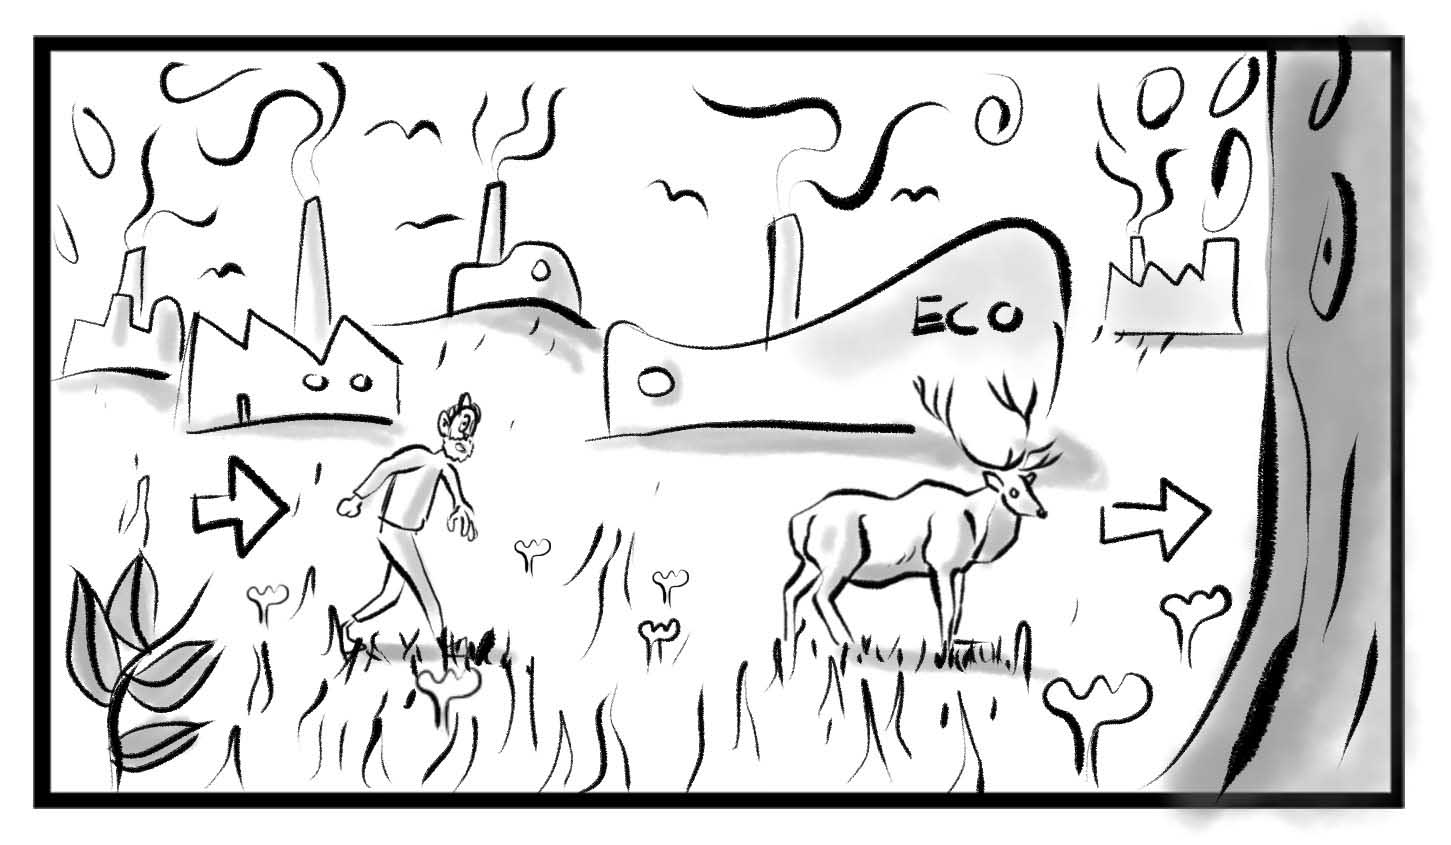 Storyboard artwork of a man following an elk